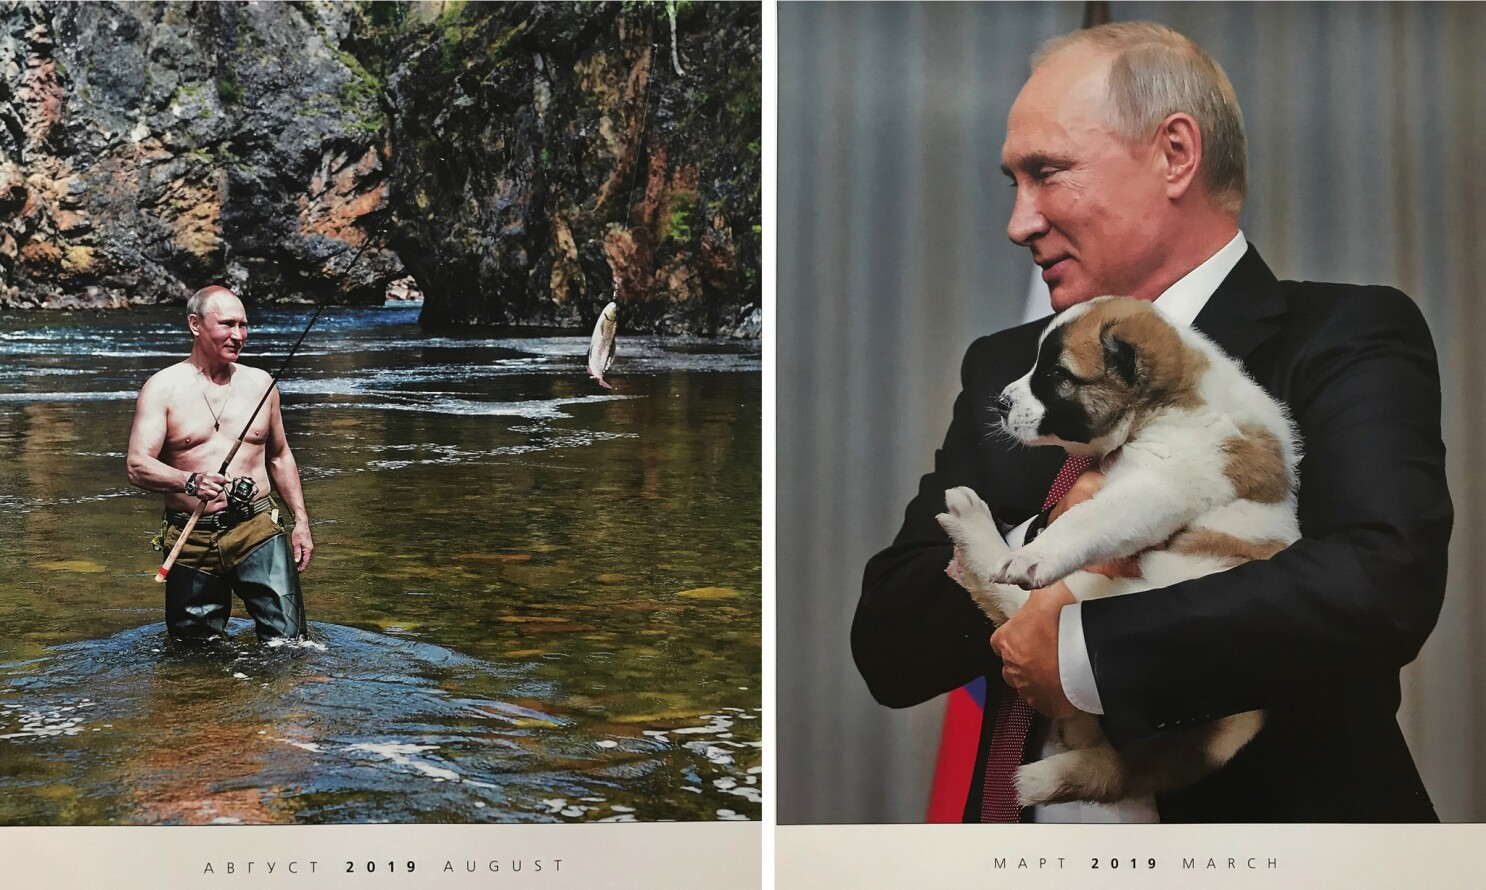 If You Like A Shirtless Russian Leader A 2019 Putin Calendar Could Be For You Los Angeles Times